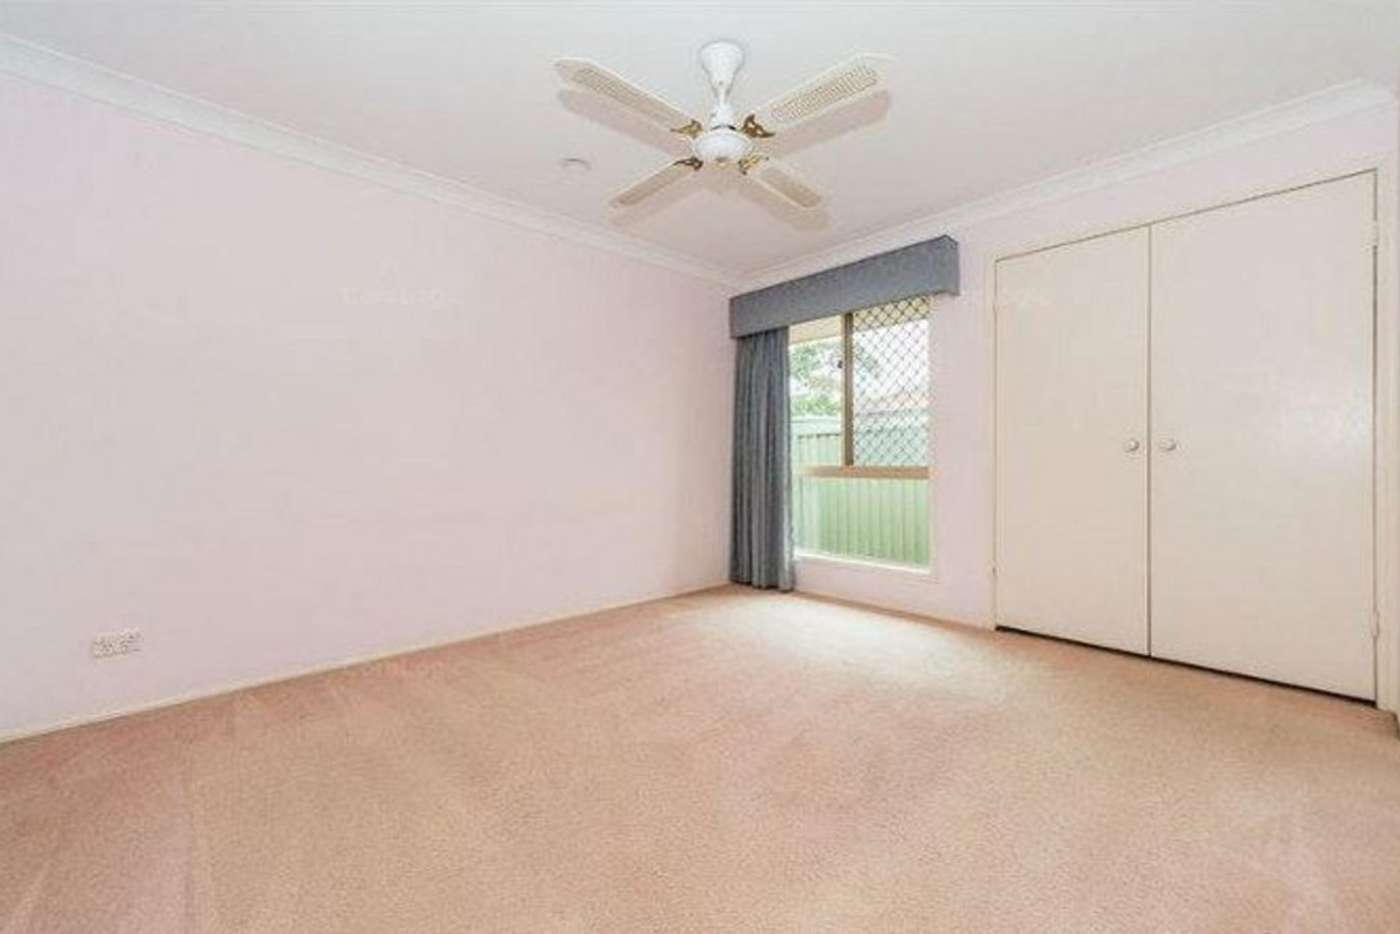 Seventh view of Homely house listing, 22 Maidstone Place, Parkwood QLD 4214